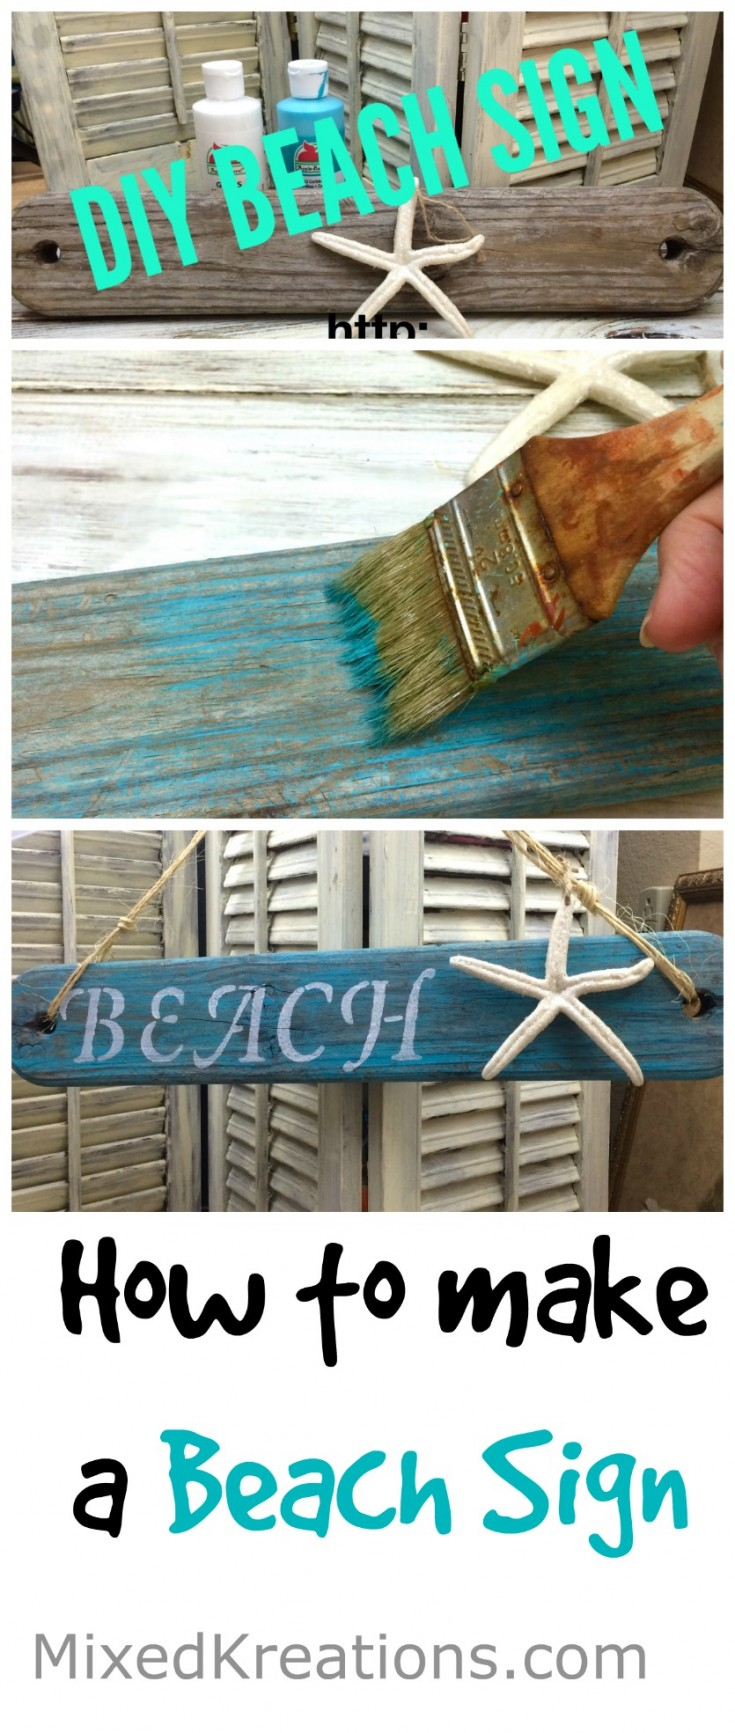 how to make a beach sign | diy beach decor | easy beach sign #BeachDecor #Beachy #BeachSign Mixedkreations.com